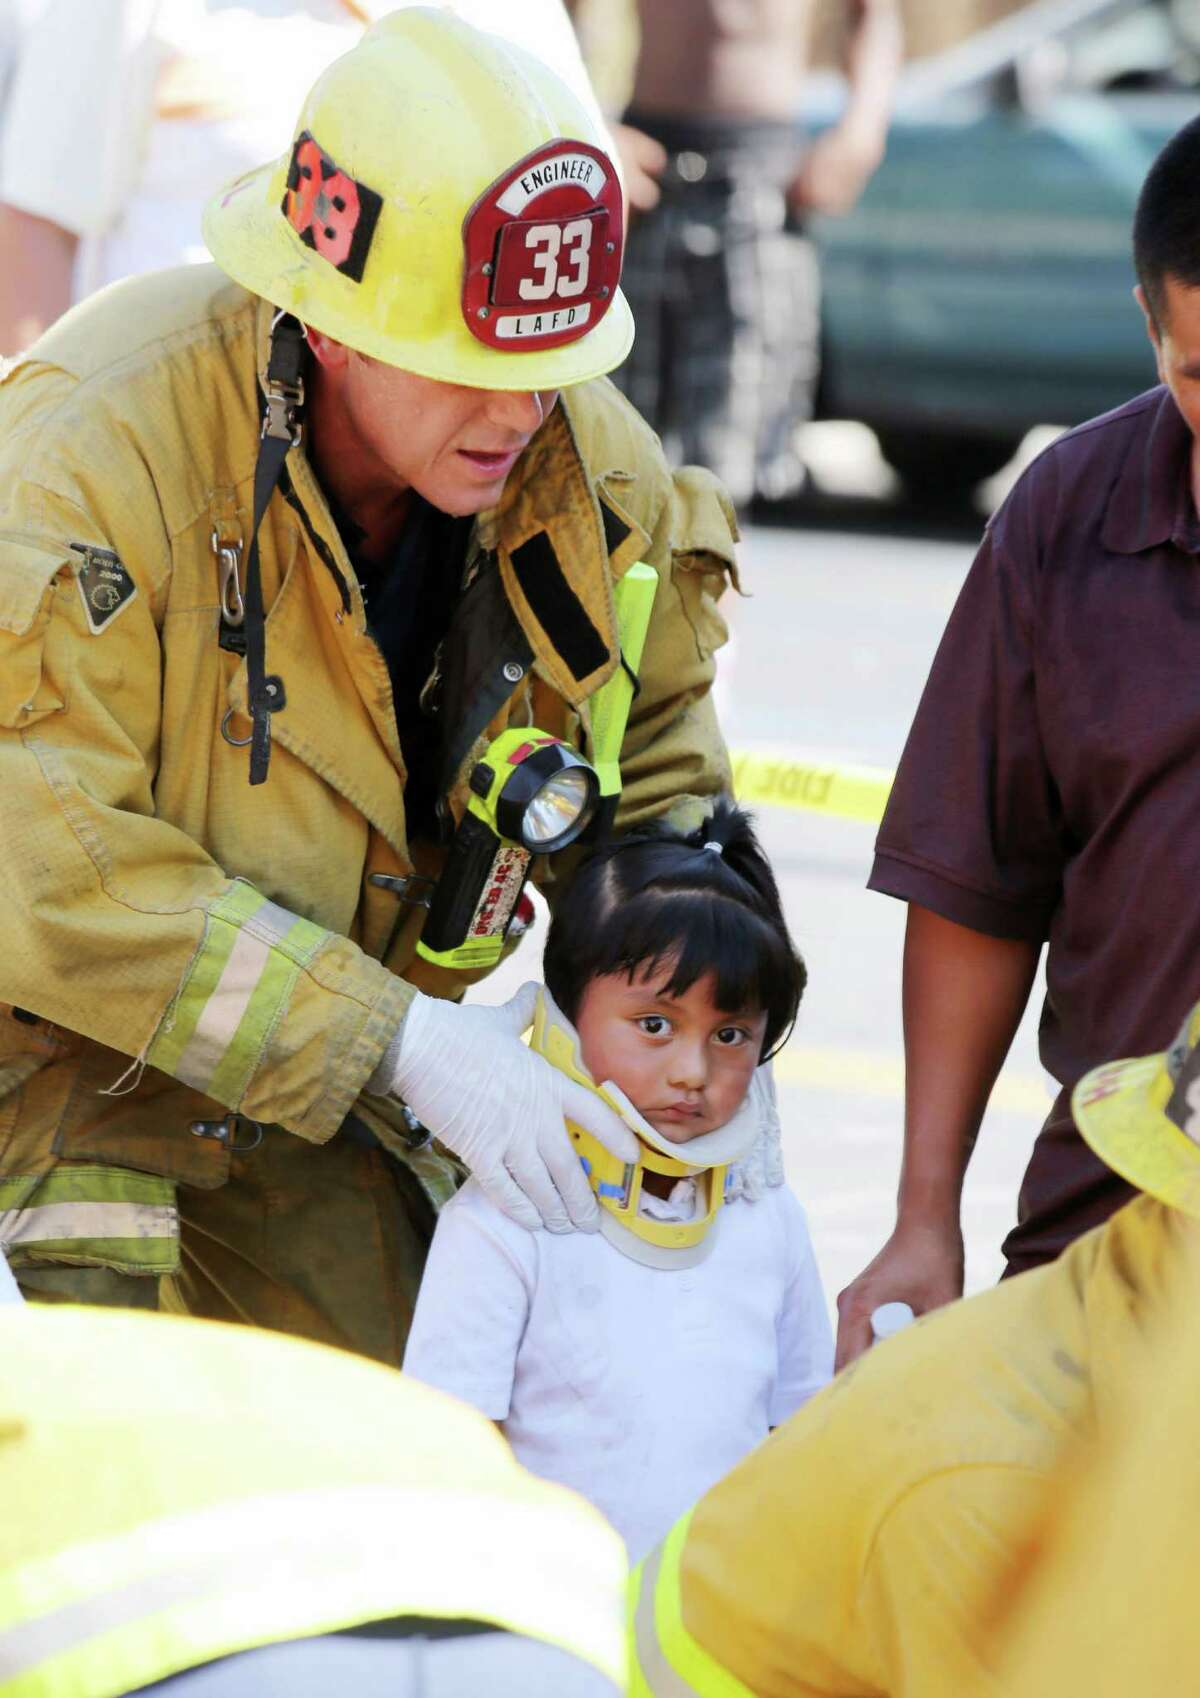 A Los Angeles City firefighter assists a child, one of eight people injured when a car sped onto a sidewalk and plowed into a group of parents and children outside Main Street Elementary school, Wednesday Aug. 29, 2012 in Los Angeles.